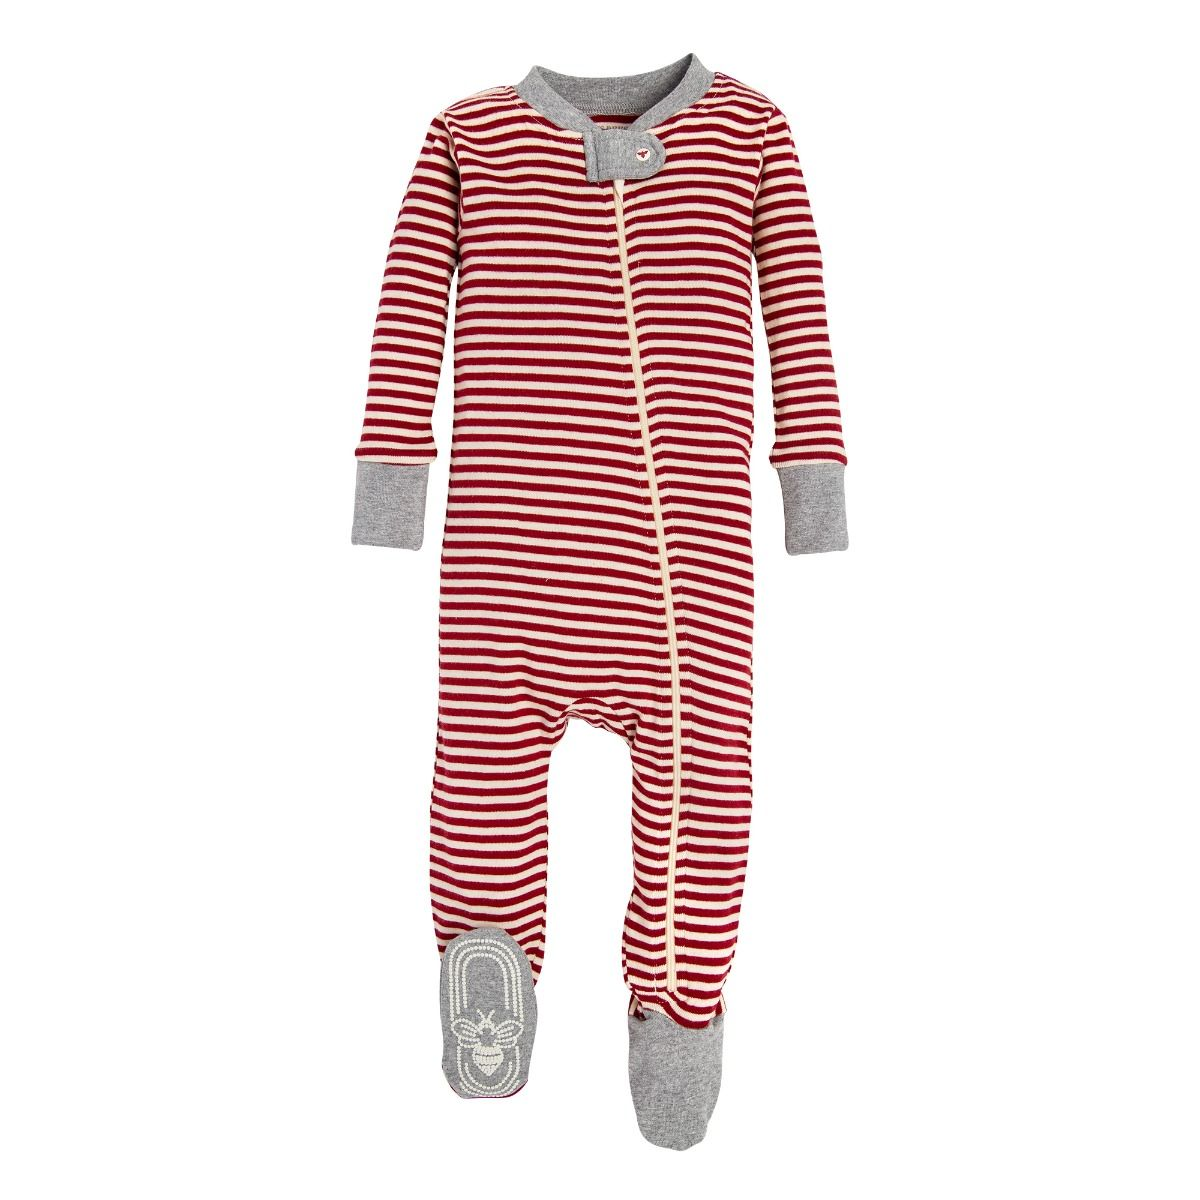 Candy Cane Stripe Organic Baby Holiday Matching Zip Up Footed Pajamas With Images Burts Bees Baby Baby Bee Candy Cane Stripes